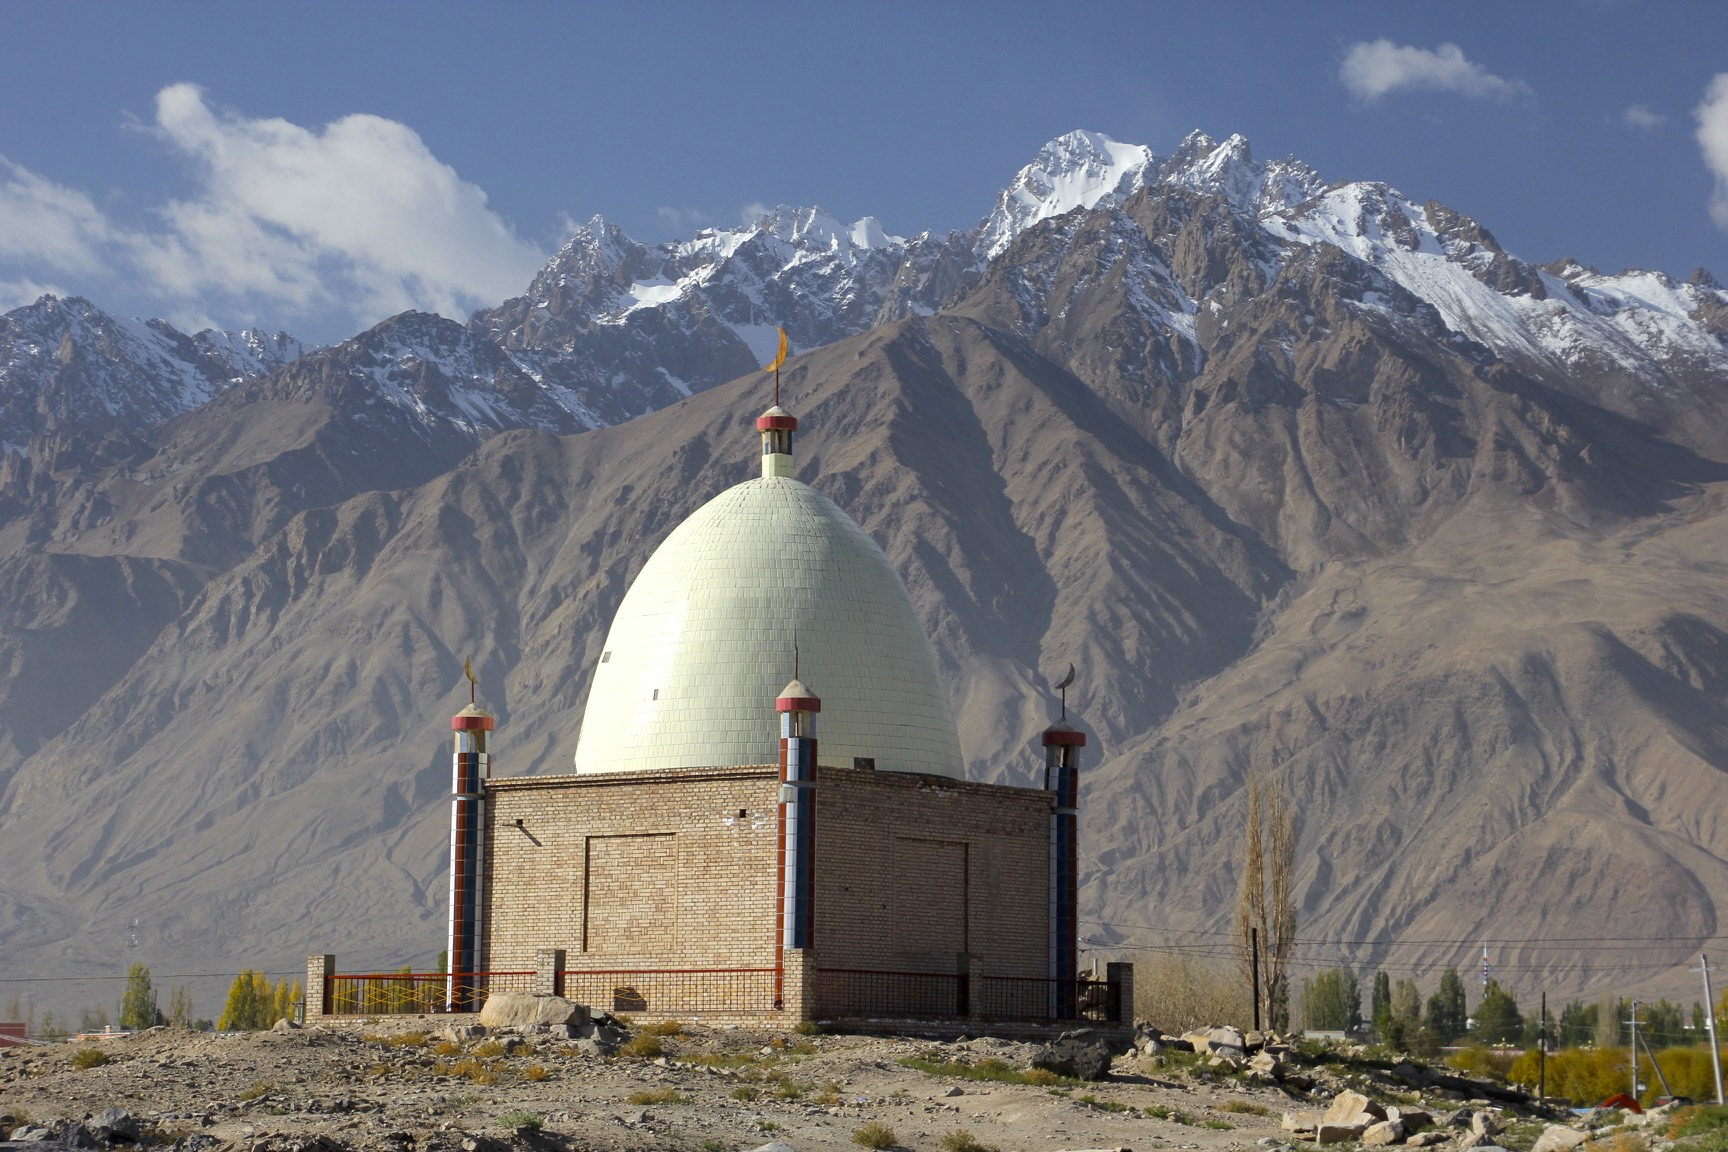 The Chinese Pamir